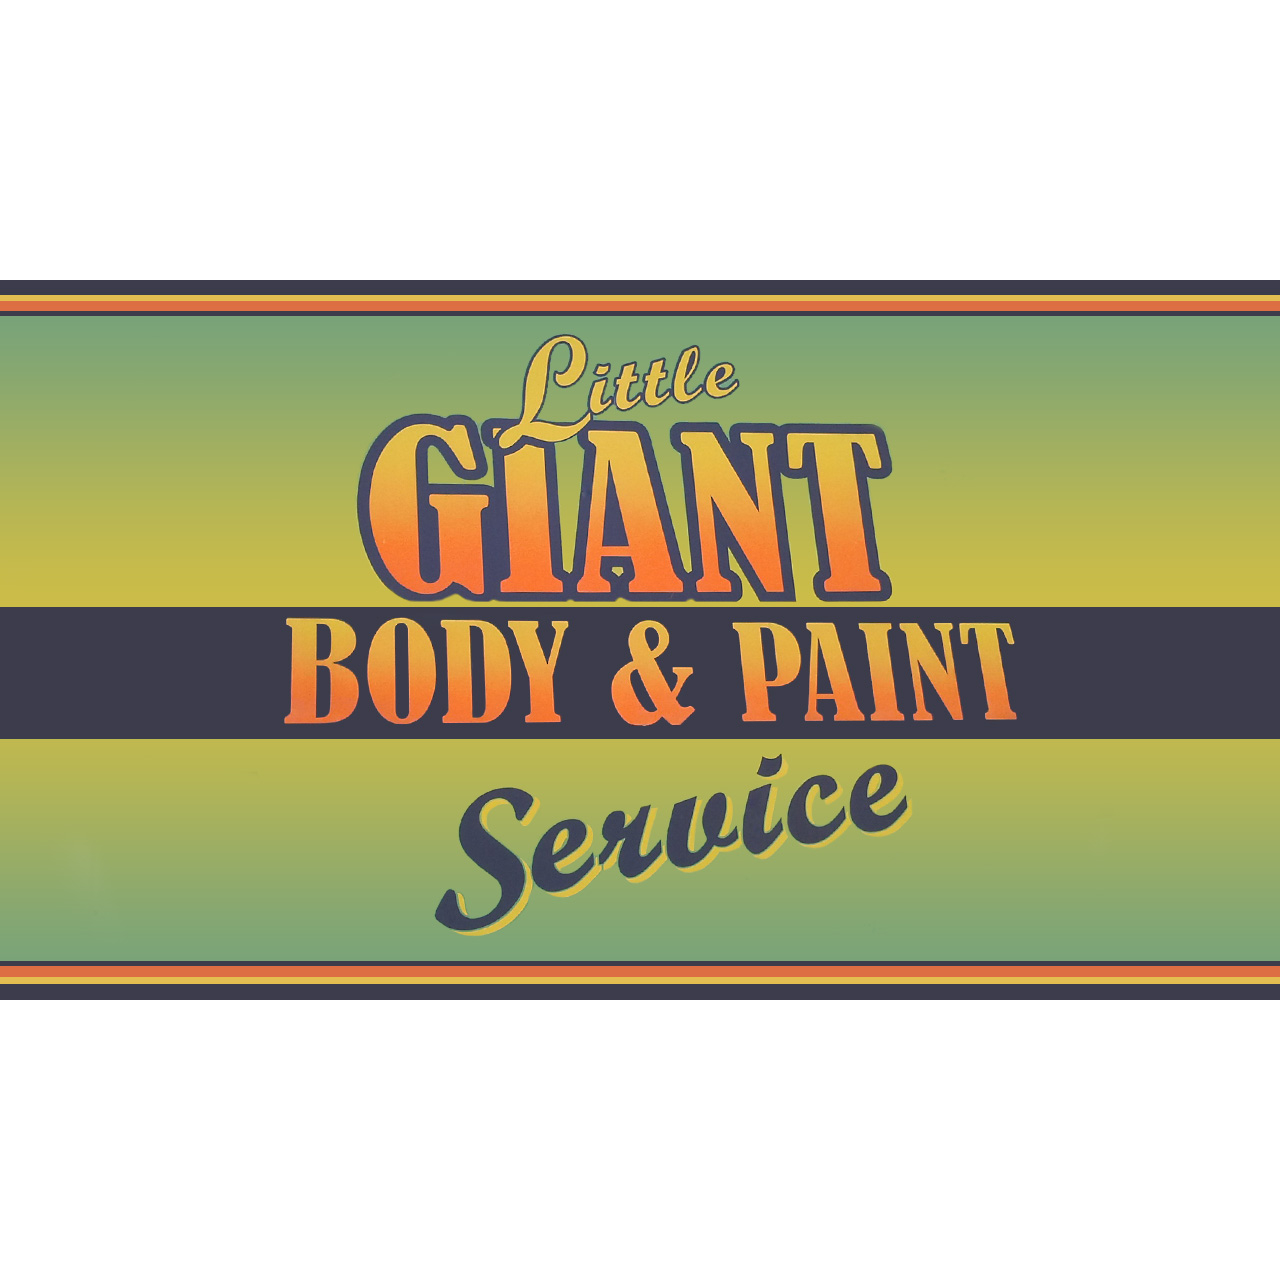 Little Giant Body & Paint in Dayton, OH, photo #1